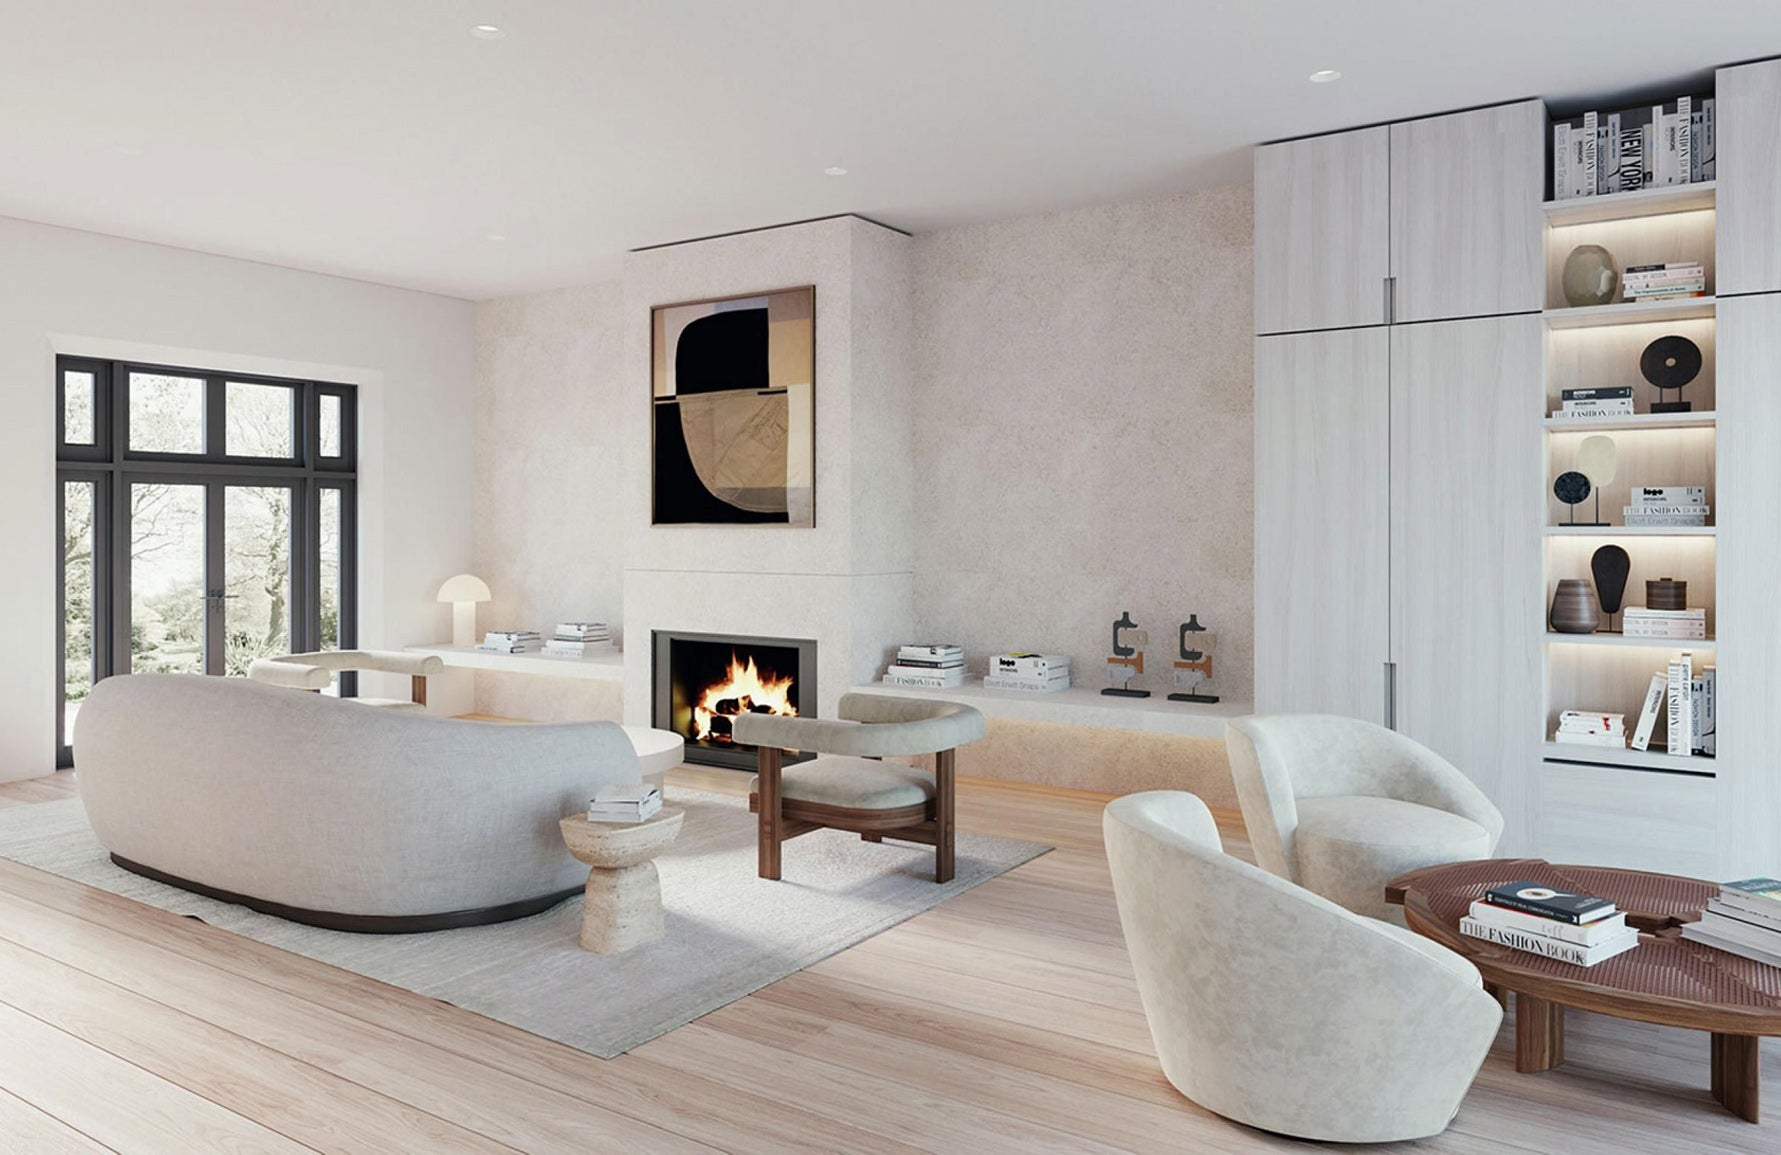 RESIDENTIAL FLAT INTERIORS by Inside